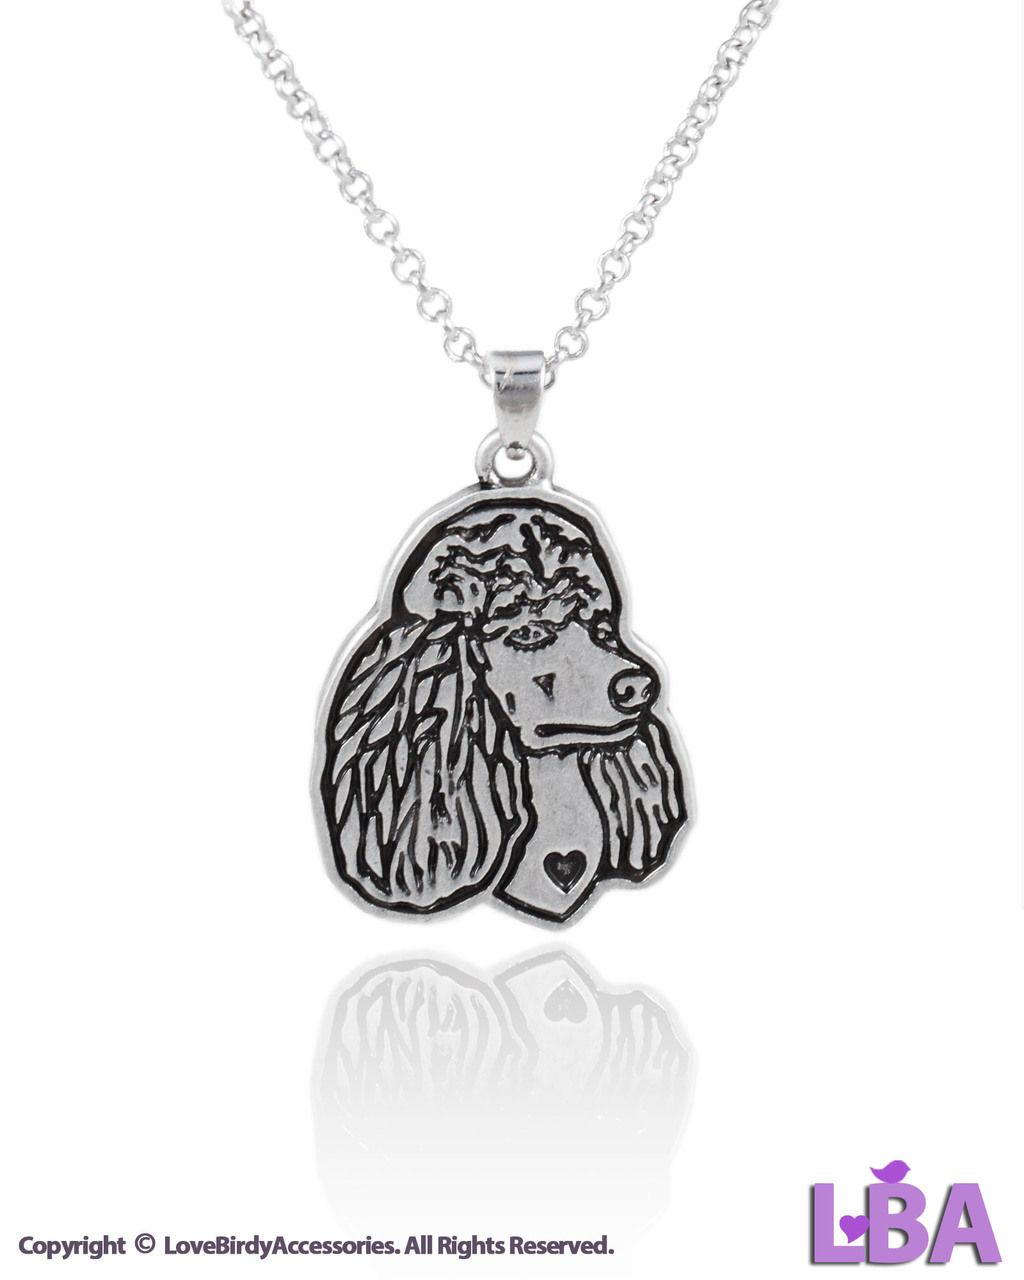 Jewelry Inspired by Animals: Antique Silver Tone Poodle Dog Pendant Necklace